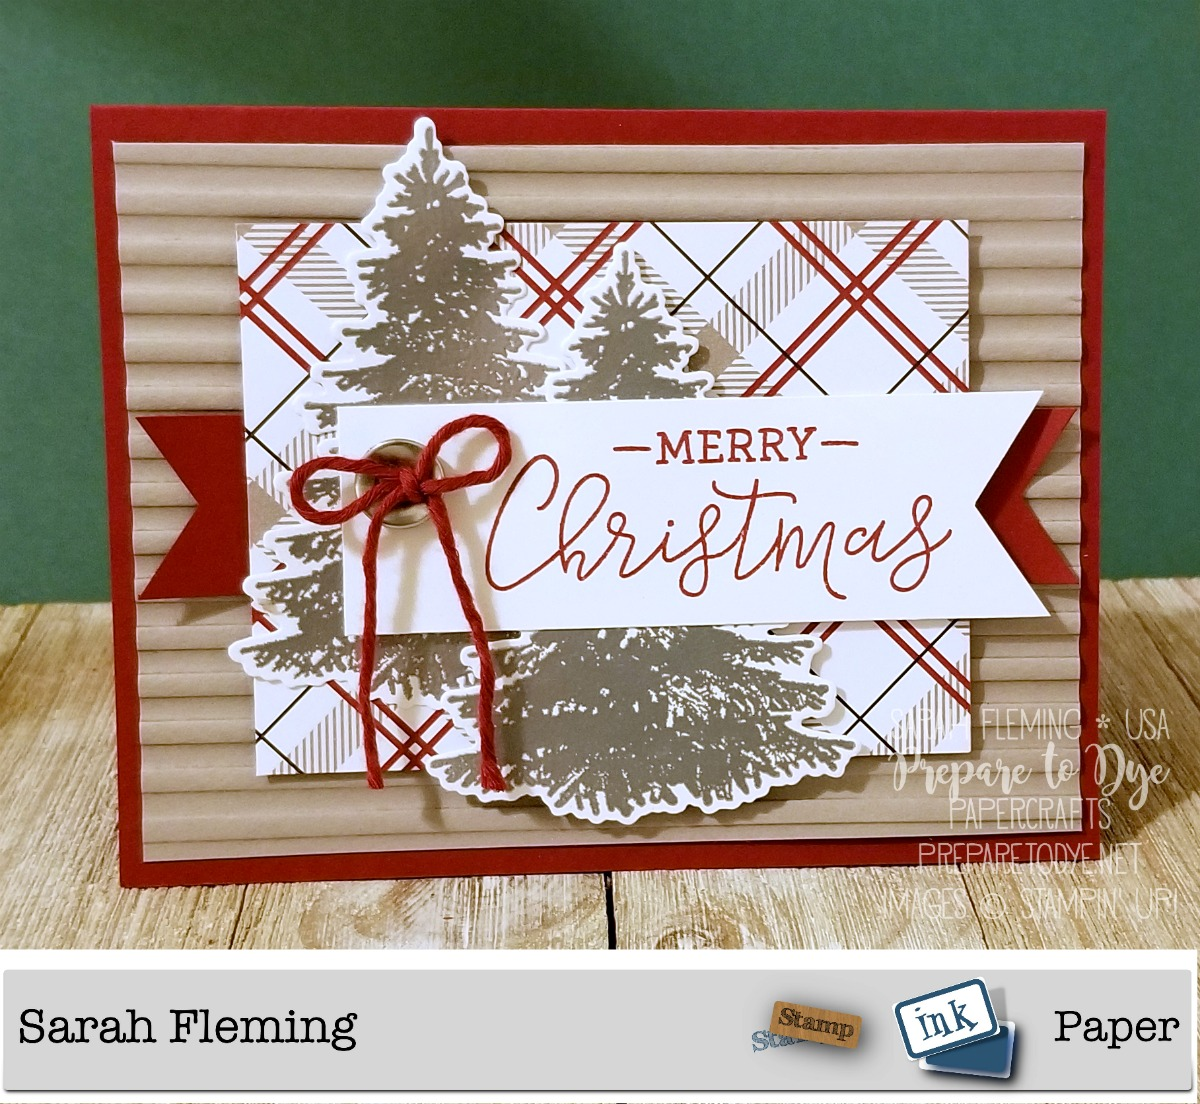 Stampin' Up! handmade Christmas card using Winter Woods bundle with In the Woods framelits, Warm Hearted Host stamp set, Festive Farmhouse paper, Corrugated dynamic embossing folder - Sarah Fleming - Prepare to Dye Papercrafts - Stamp, Ink, Paper Challenge 168